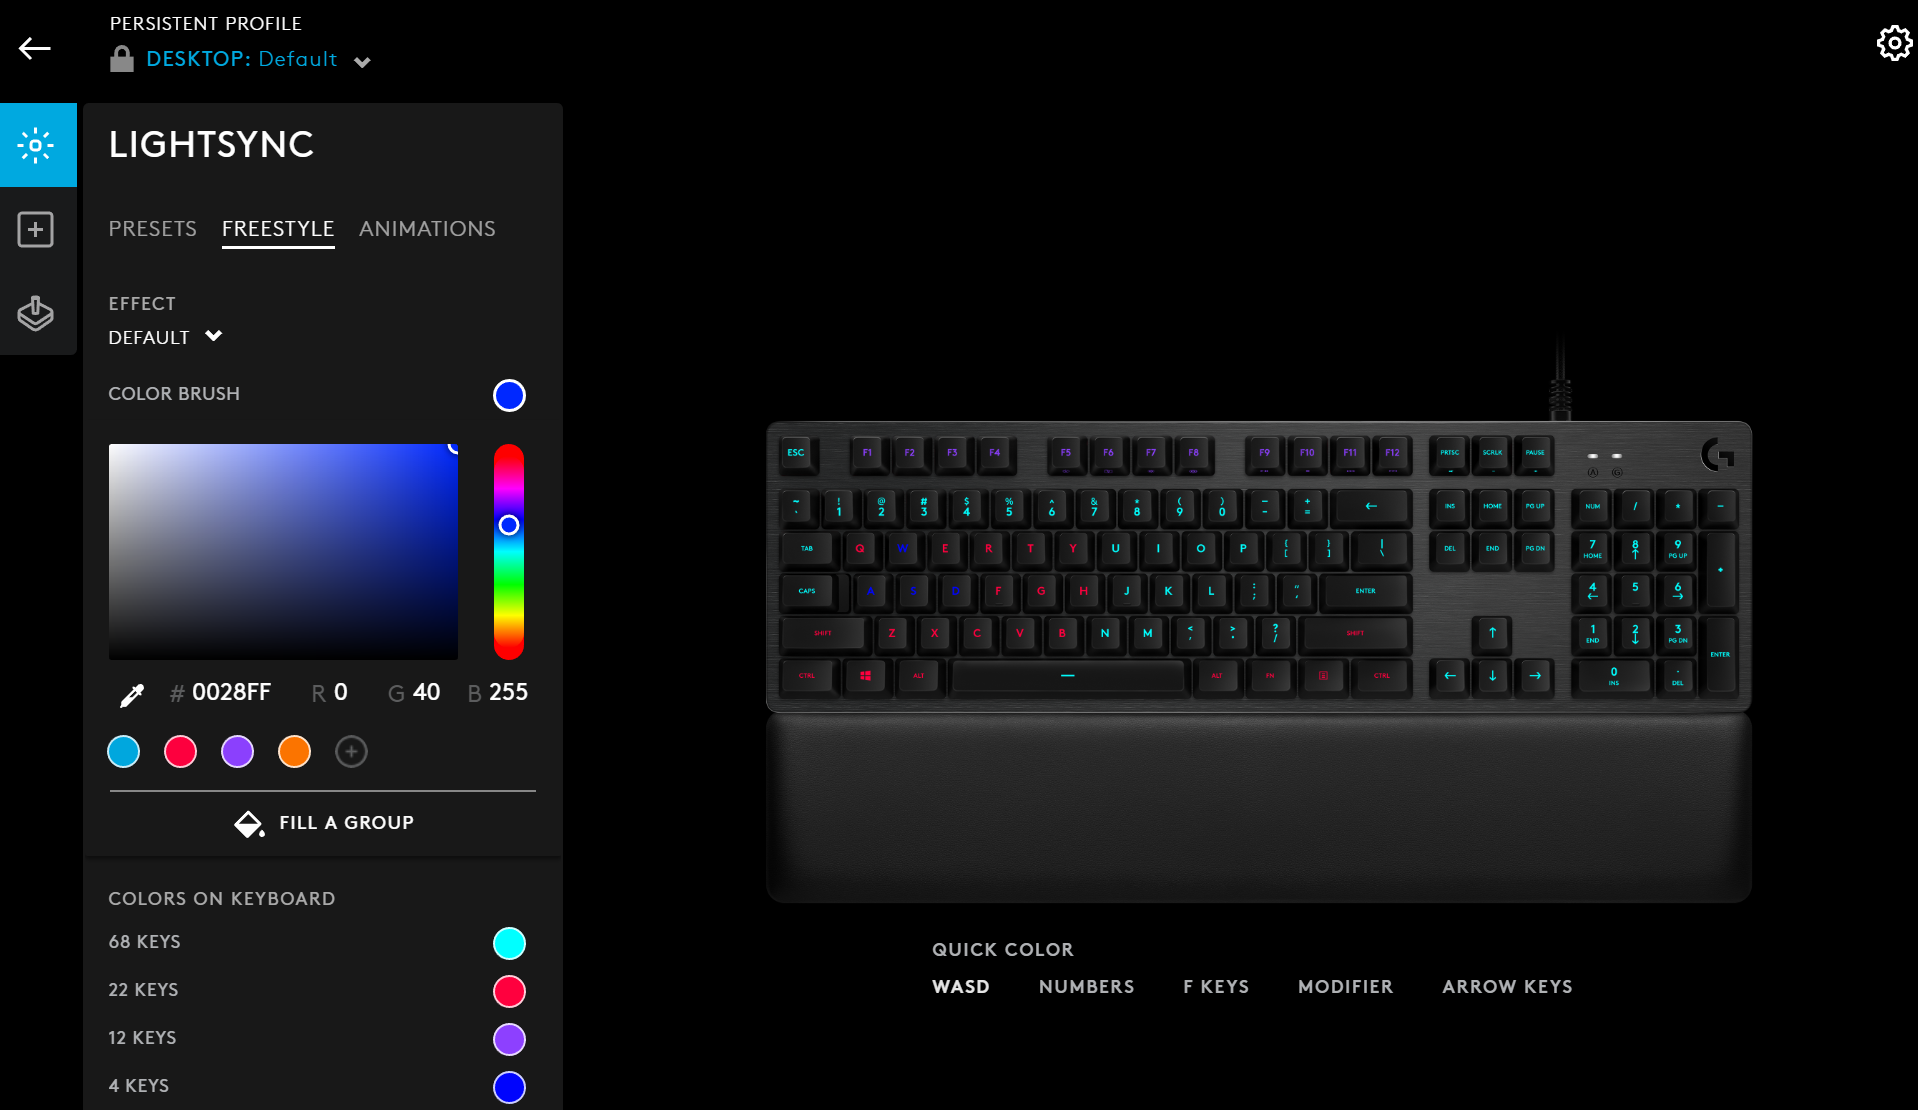 How to control the lighting of your Logitech peripherals - The Verge